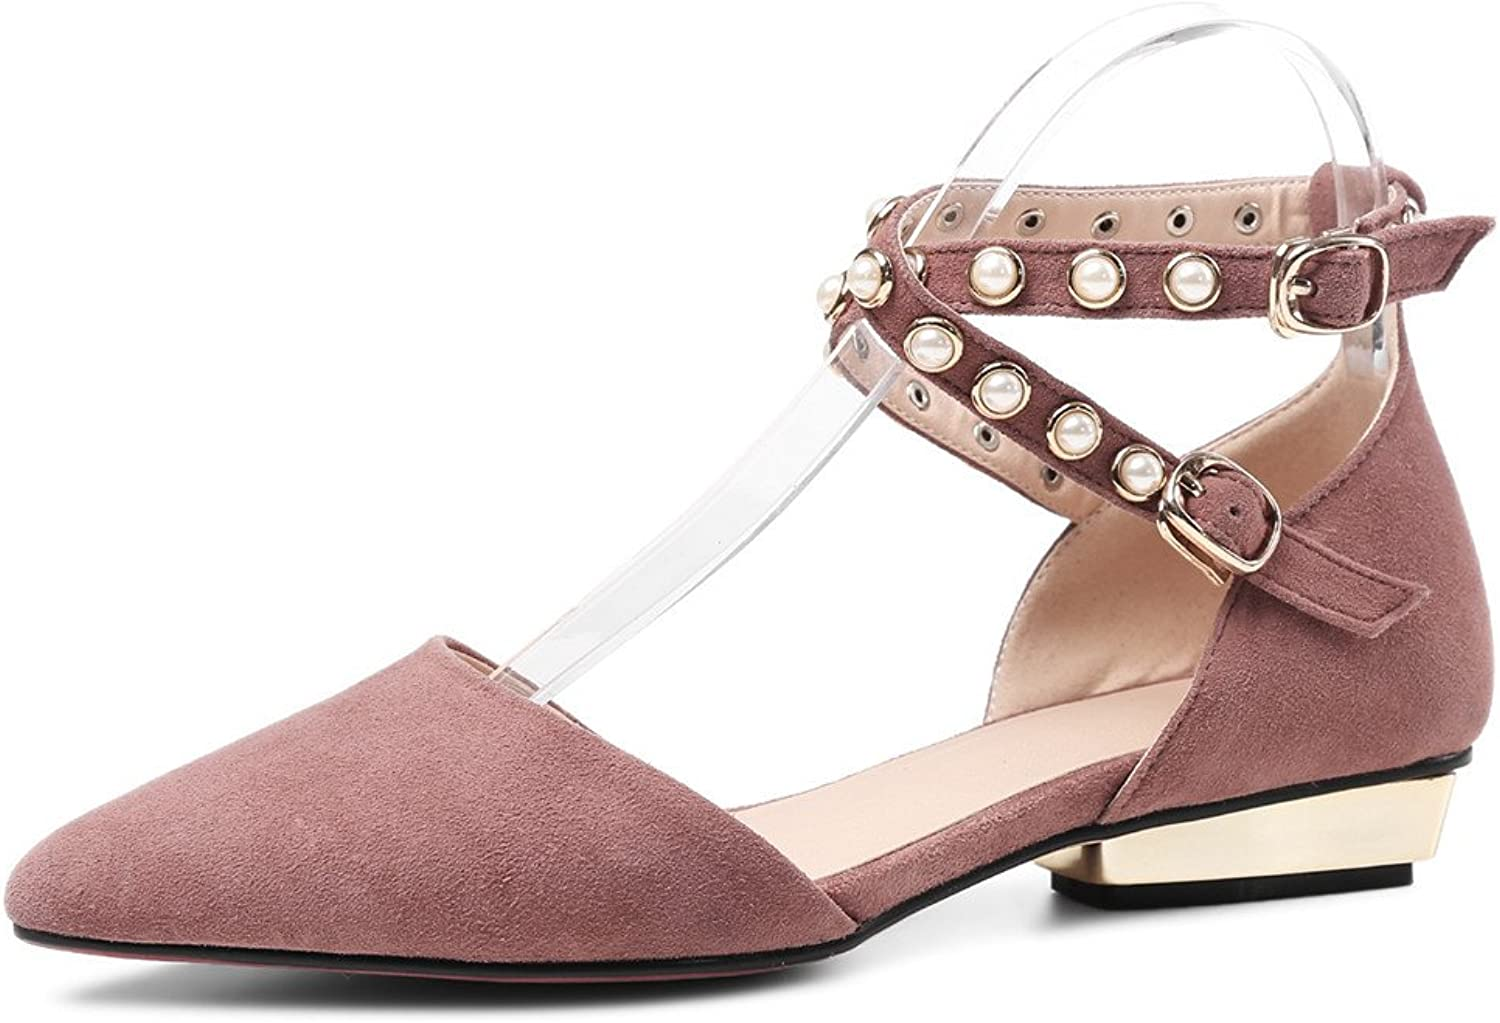 Nine Seven Suede Leather Women's Pointy Toe Buckles Elegant Handmade Dress Flats shoes